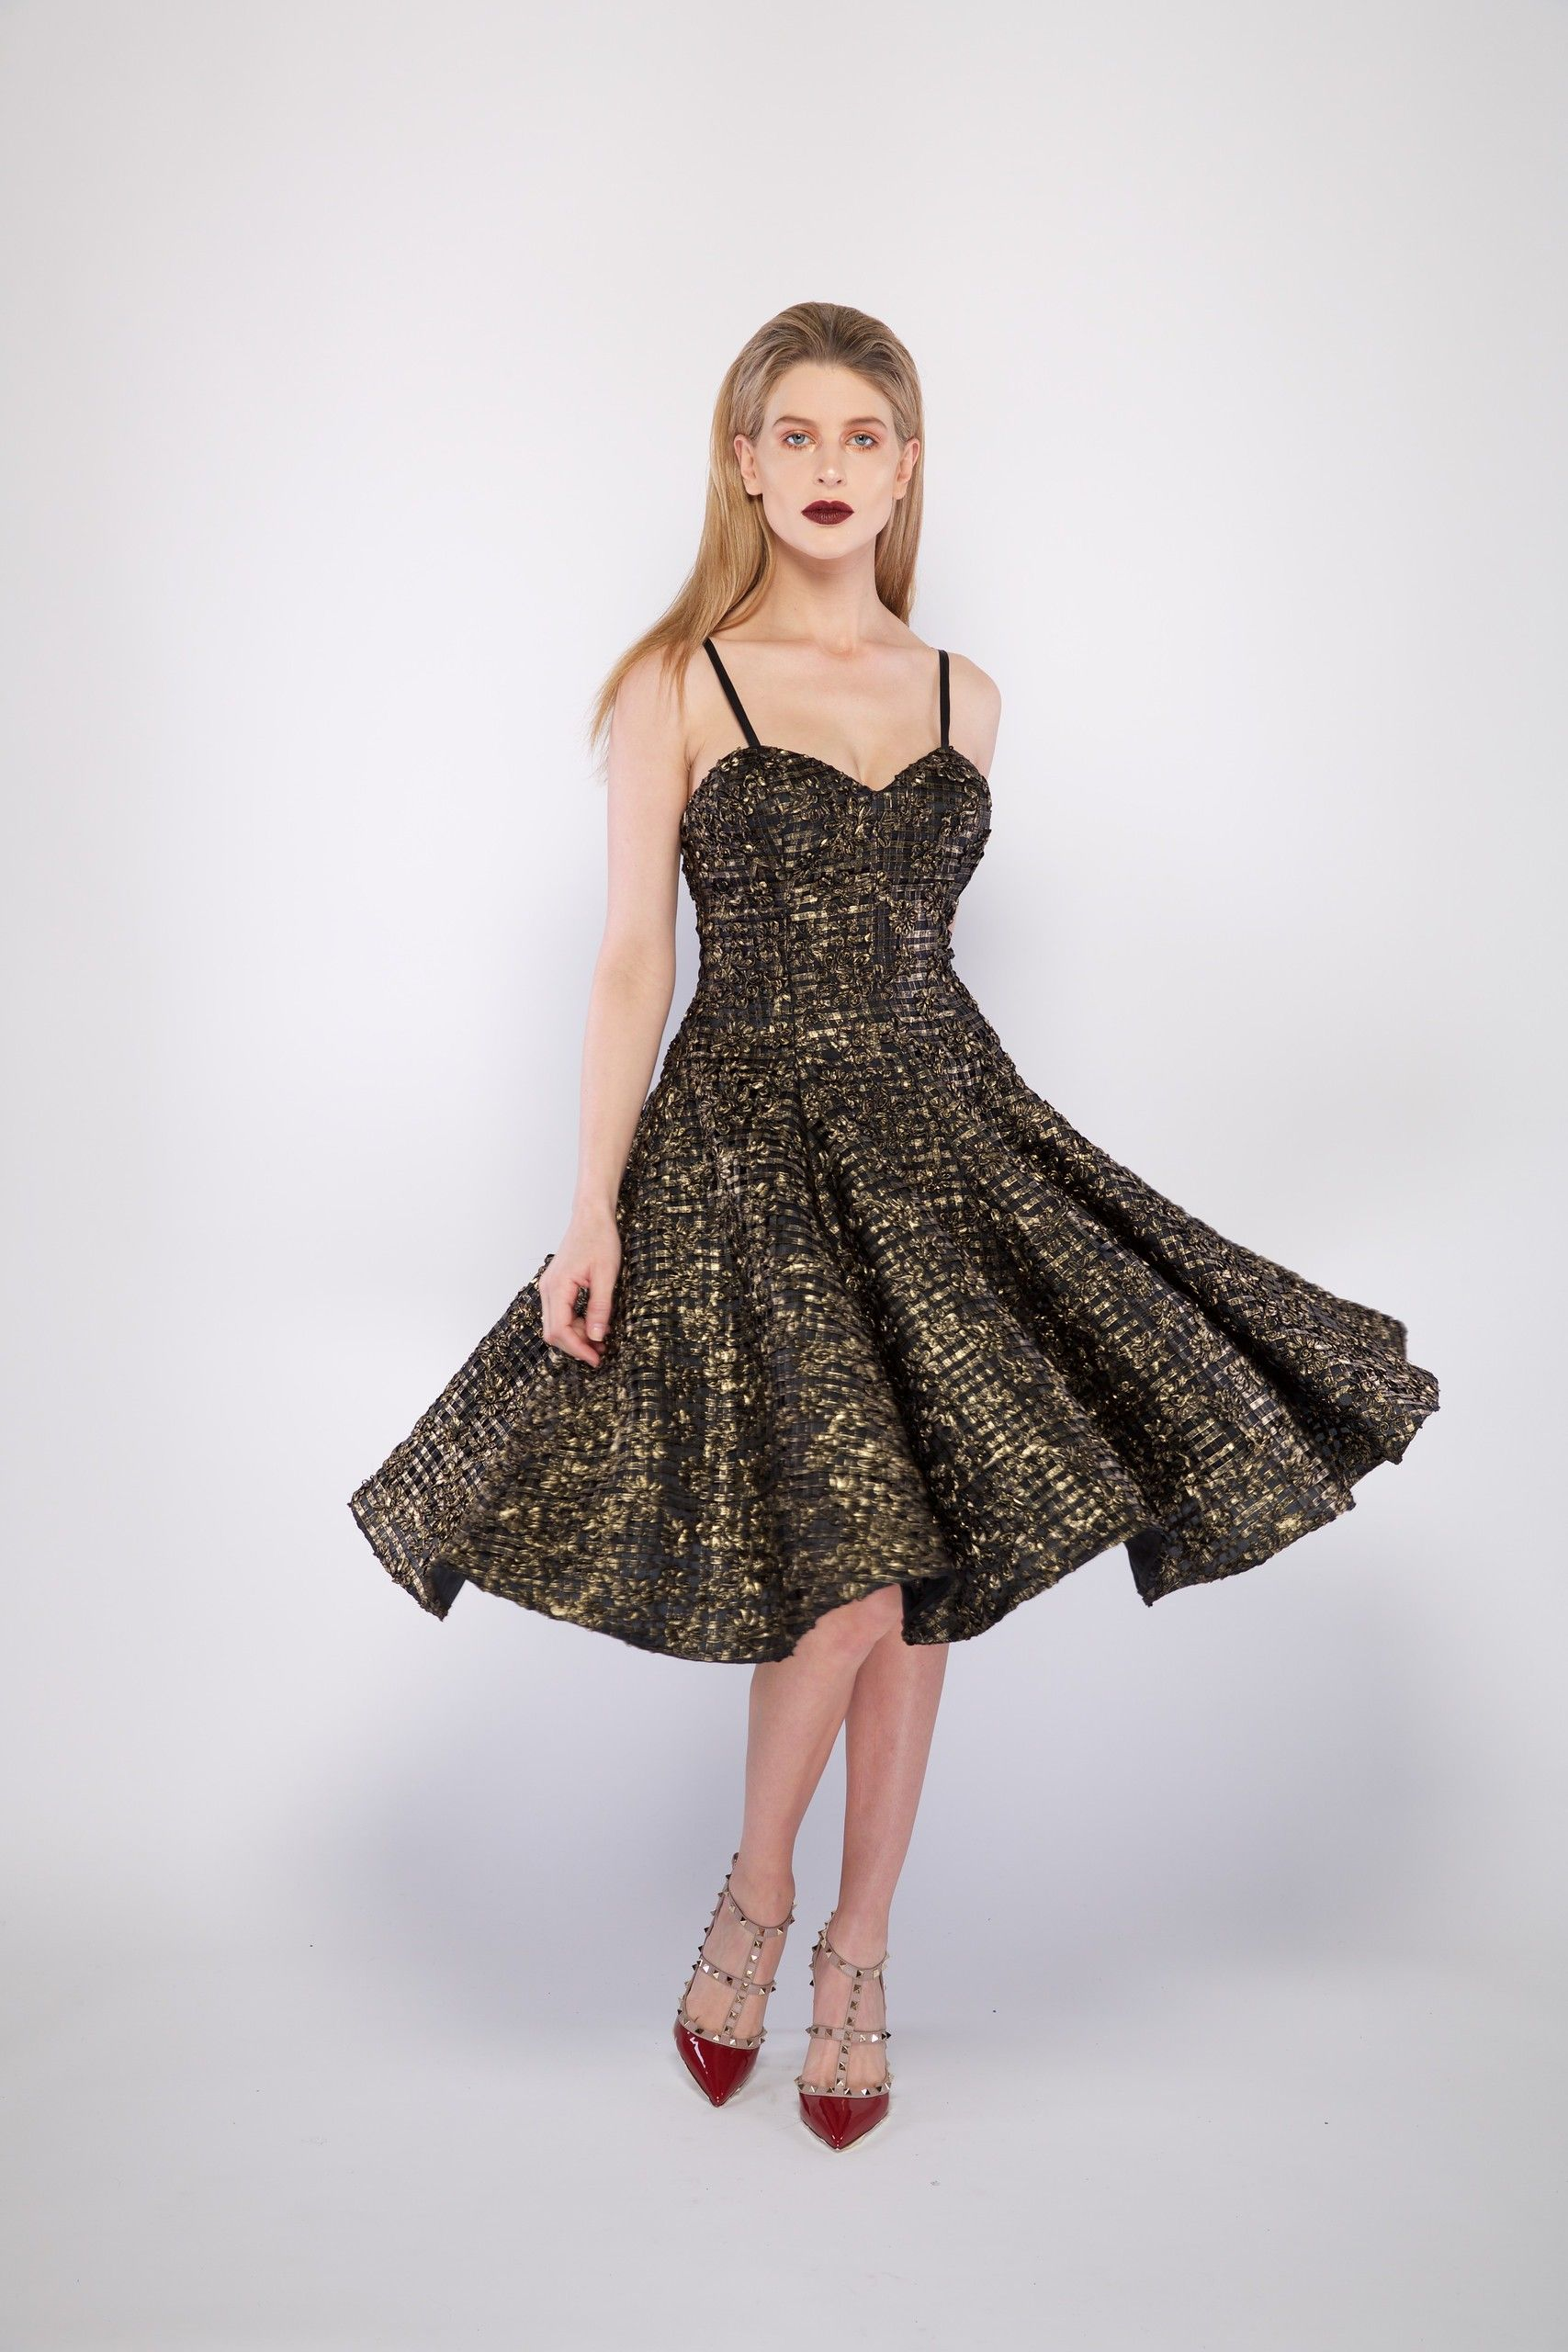 Gisele is a cocktail swing dress with a full circle skirt gold lace